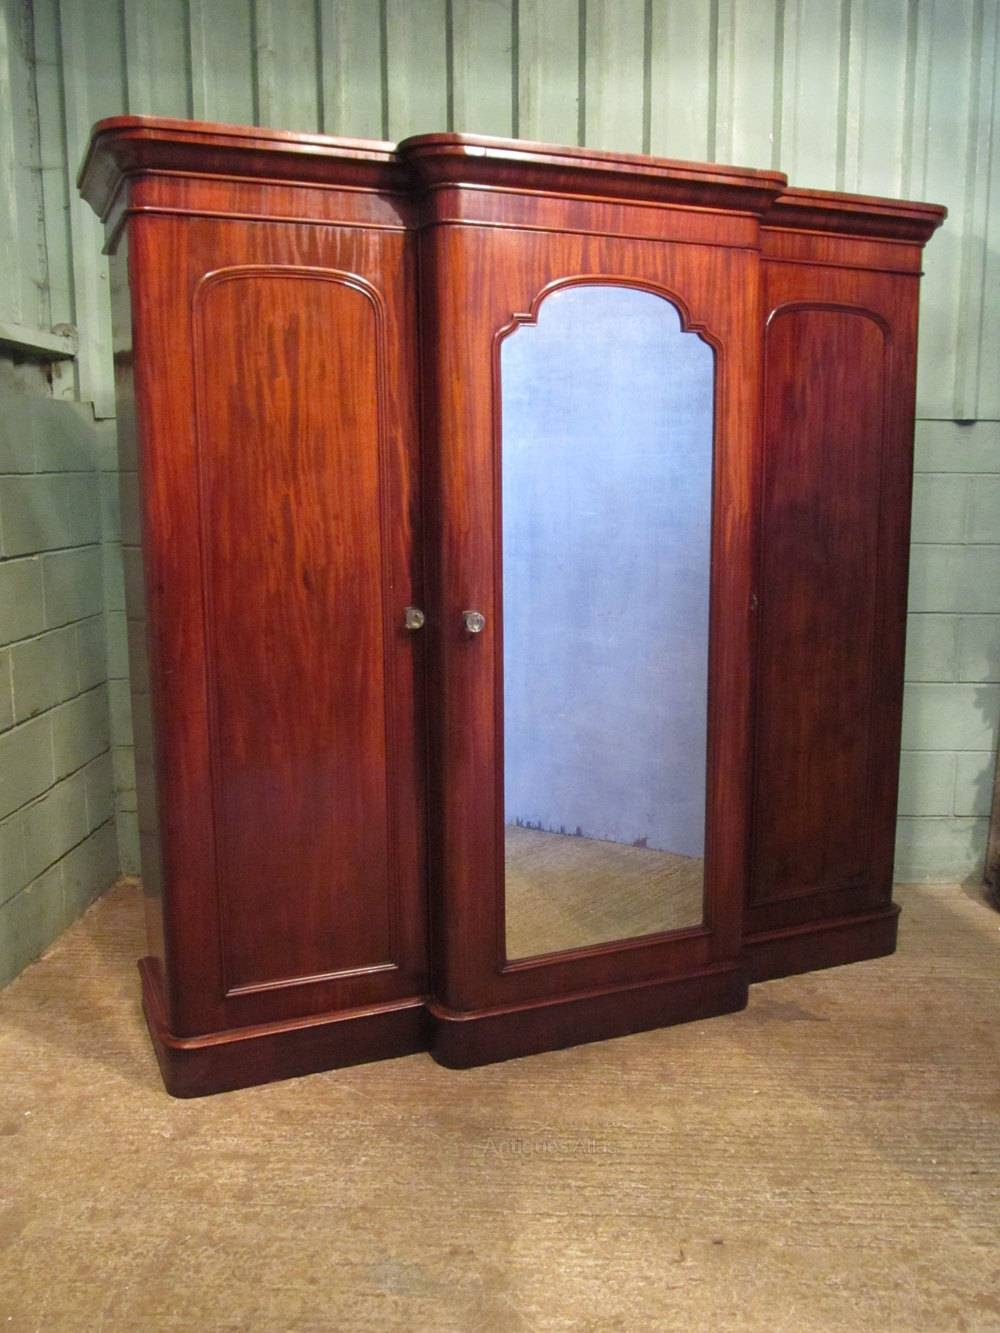 Victorian Mahogany Breakfront Triple Wardrobe - Antiques Atlas intended for Victorian Mahogany Breakfront Wardrobe (Image 11 of 30)